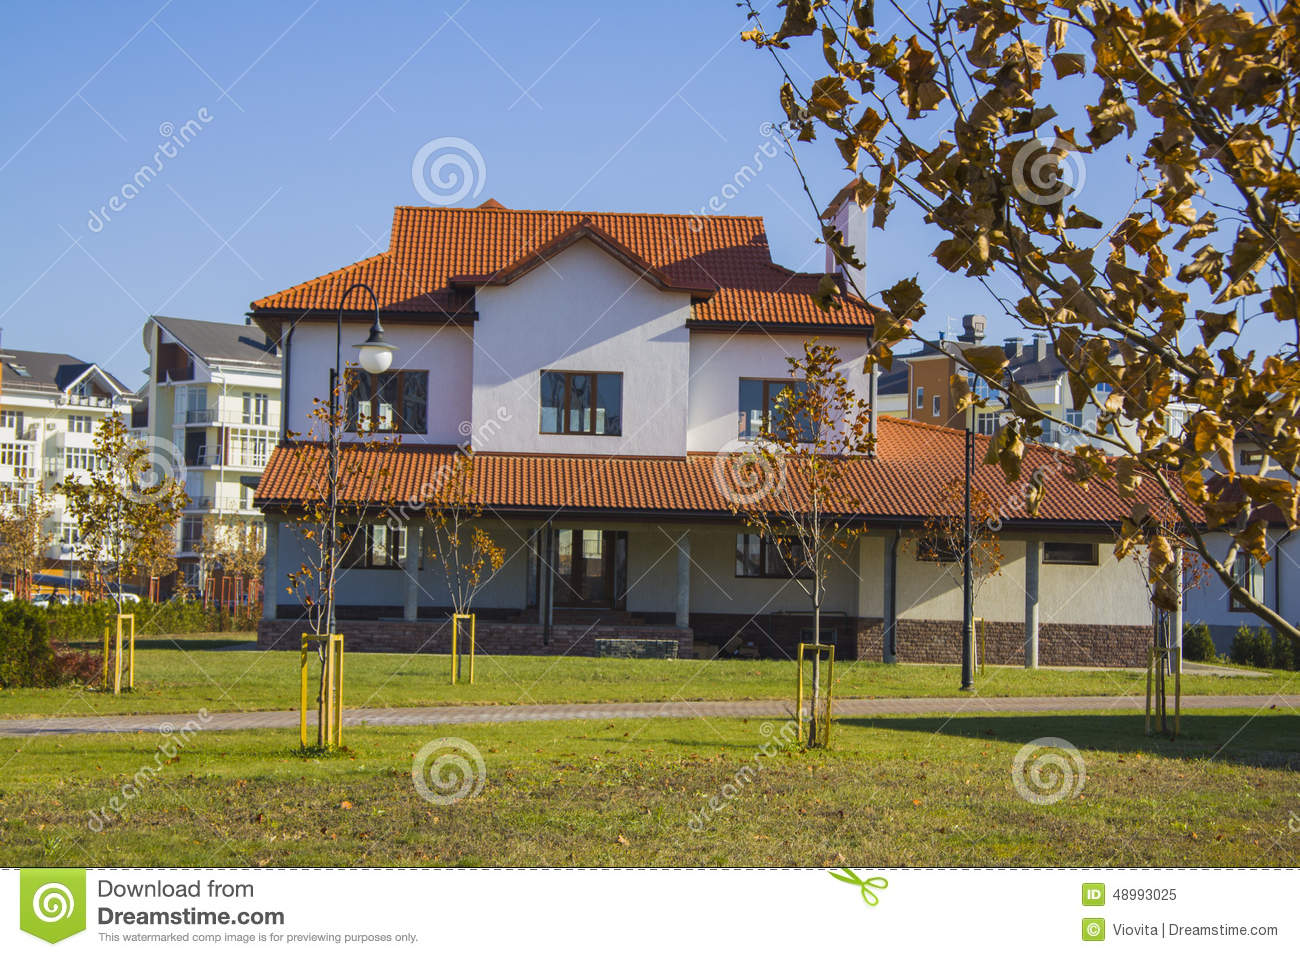 Classic american house stock photo image 48993025 for American classic house mouse